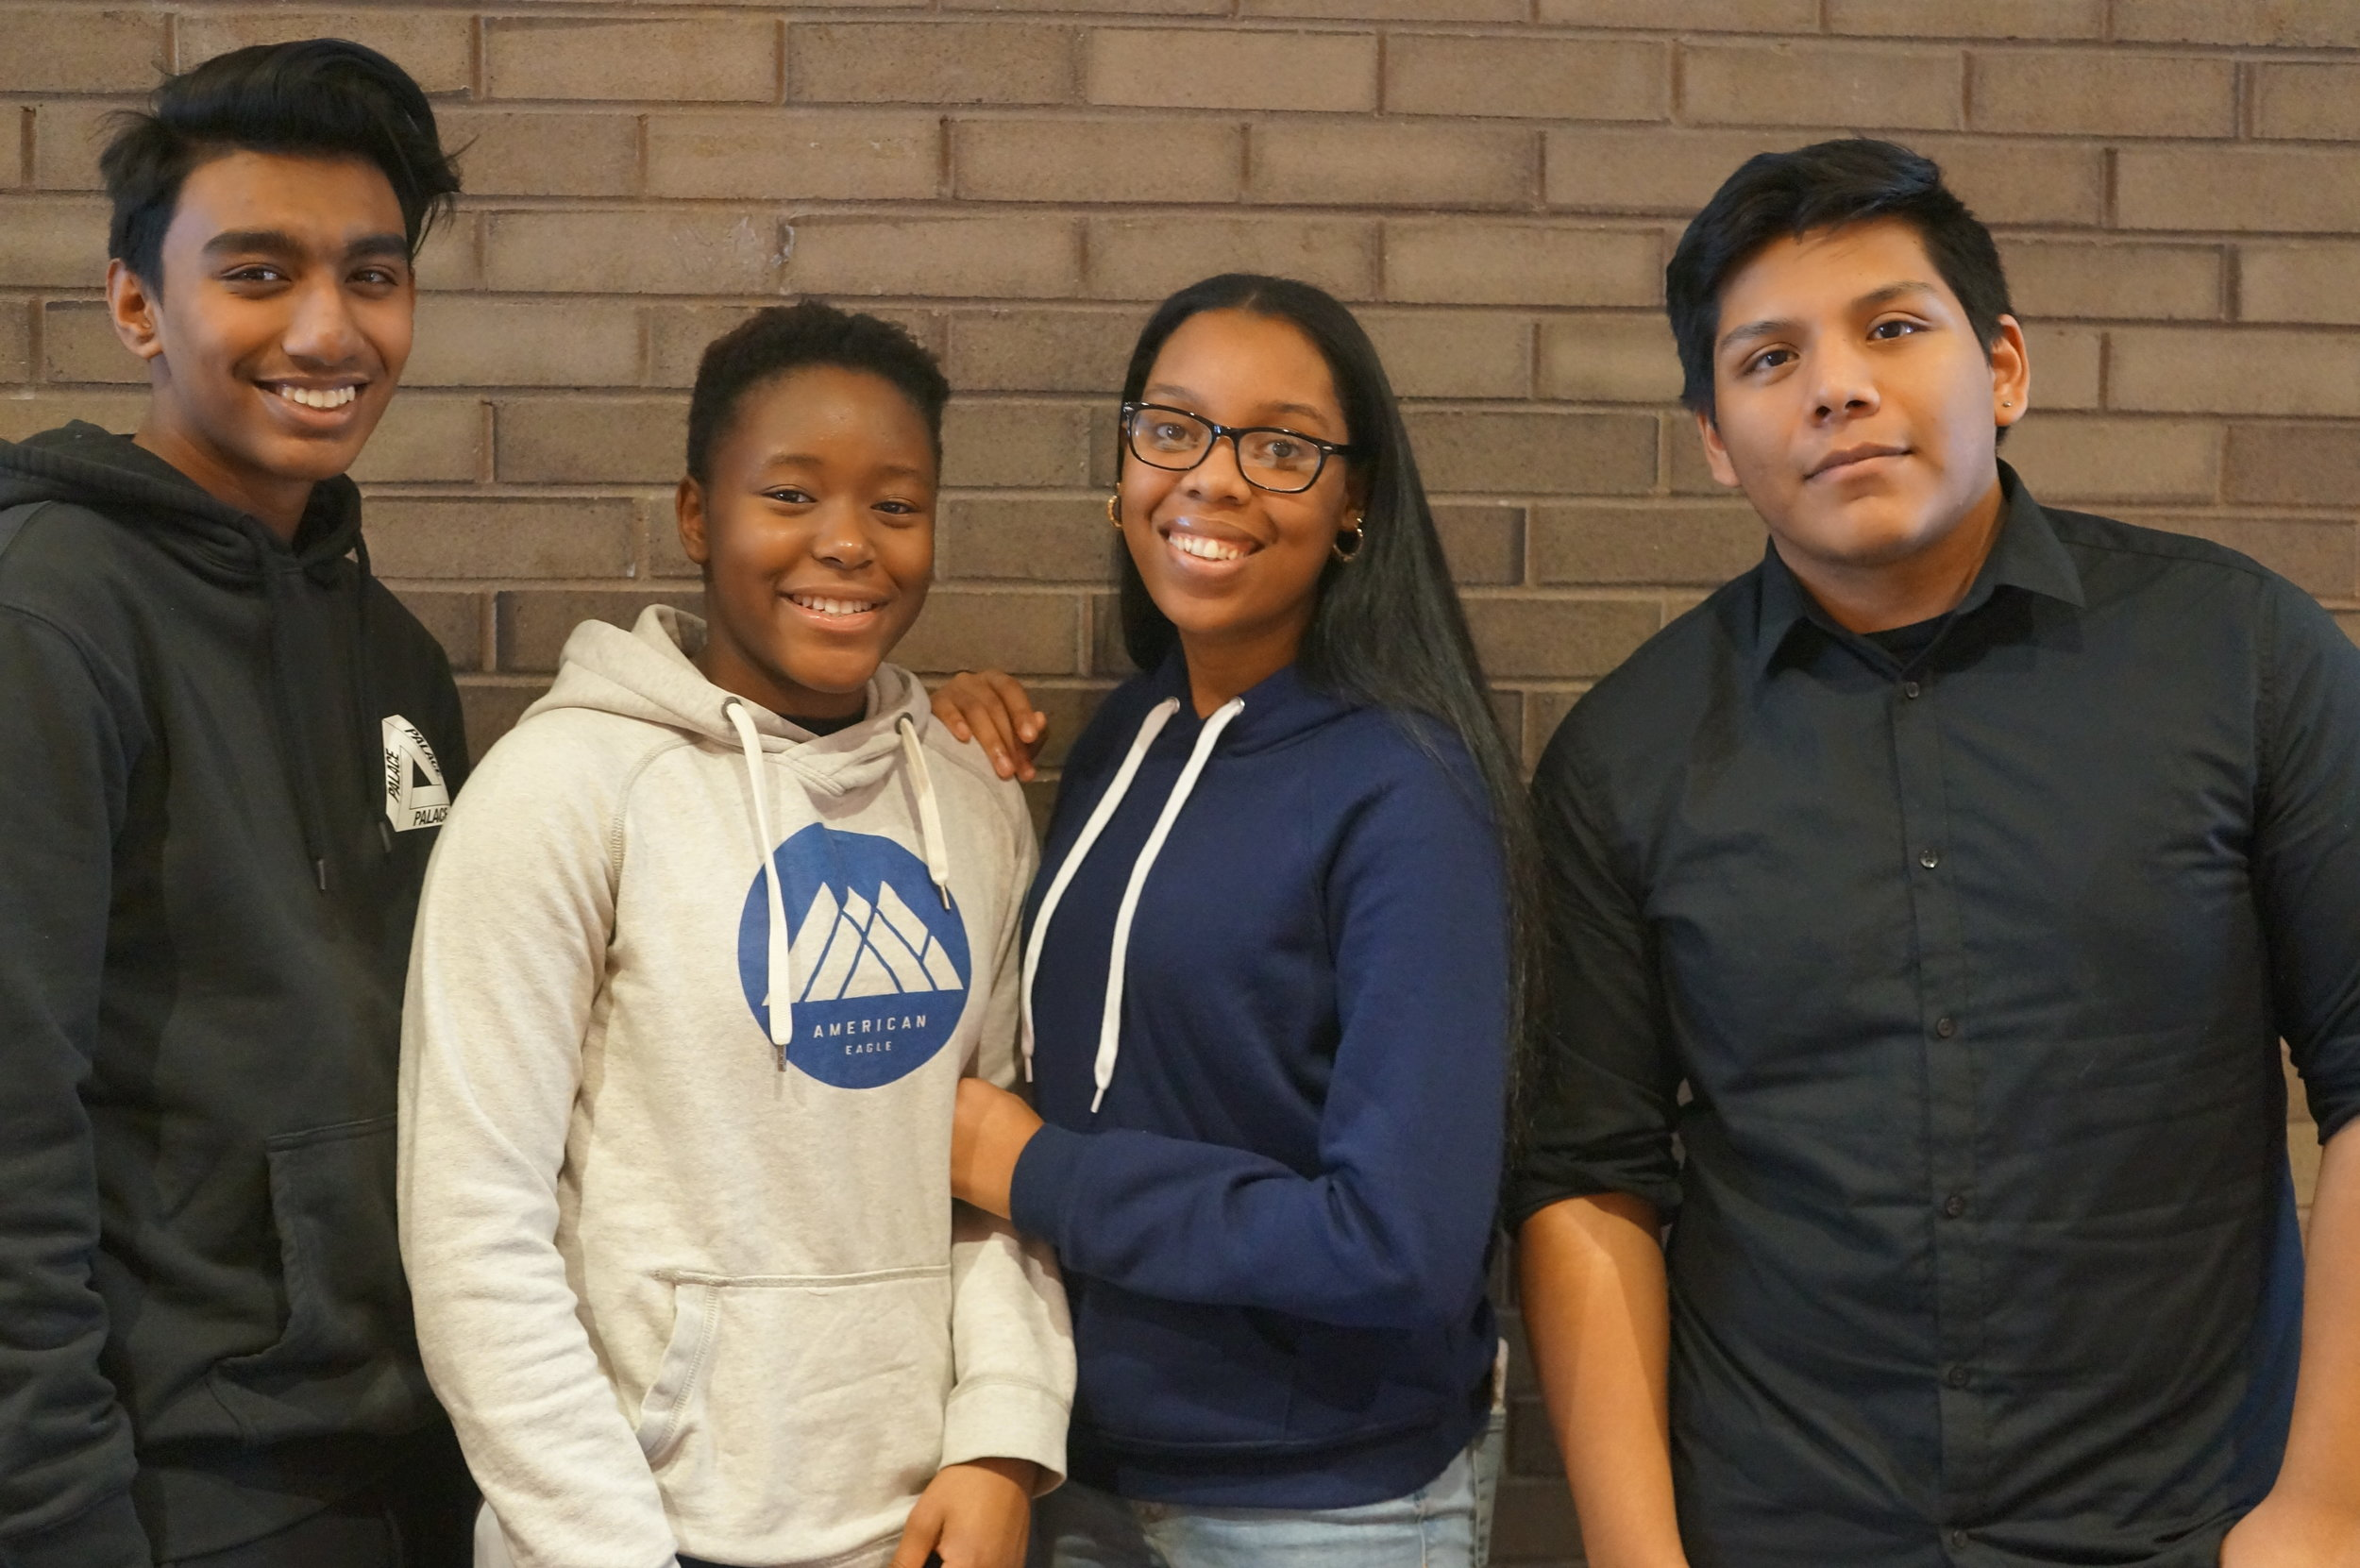 Rashik, Eli, Tanasia, and Andy in January 2018 at our MATHCOUNTS prep event. All four of these high school students coach math teams at our partner middle schools!